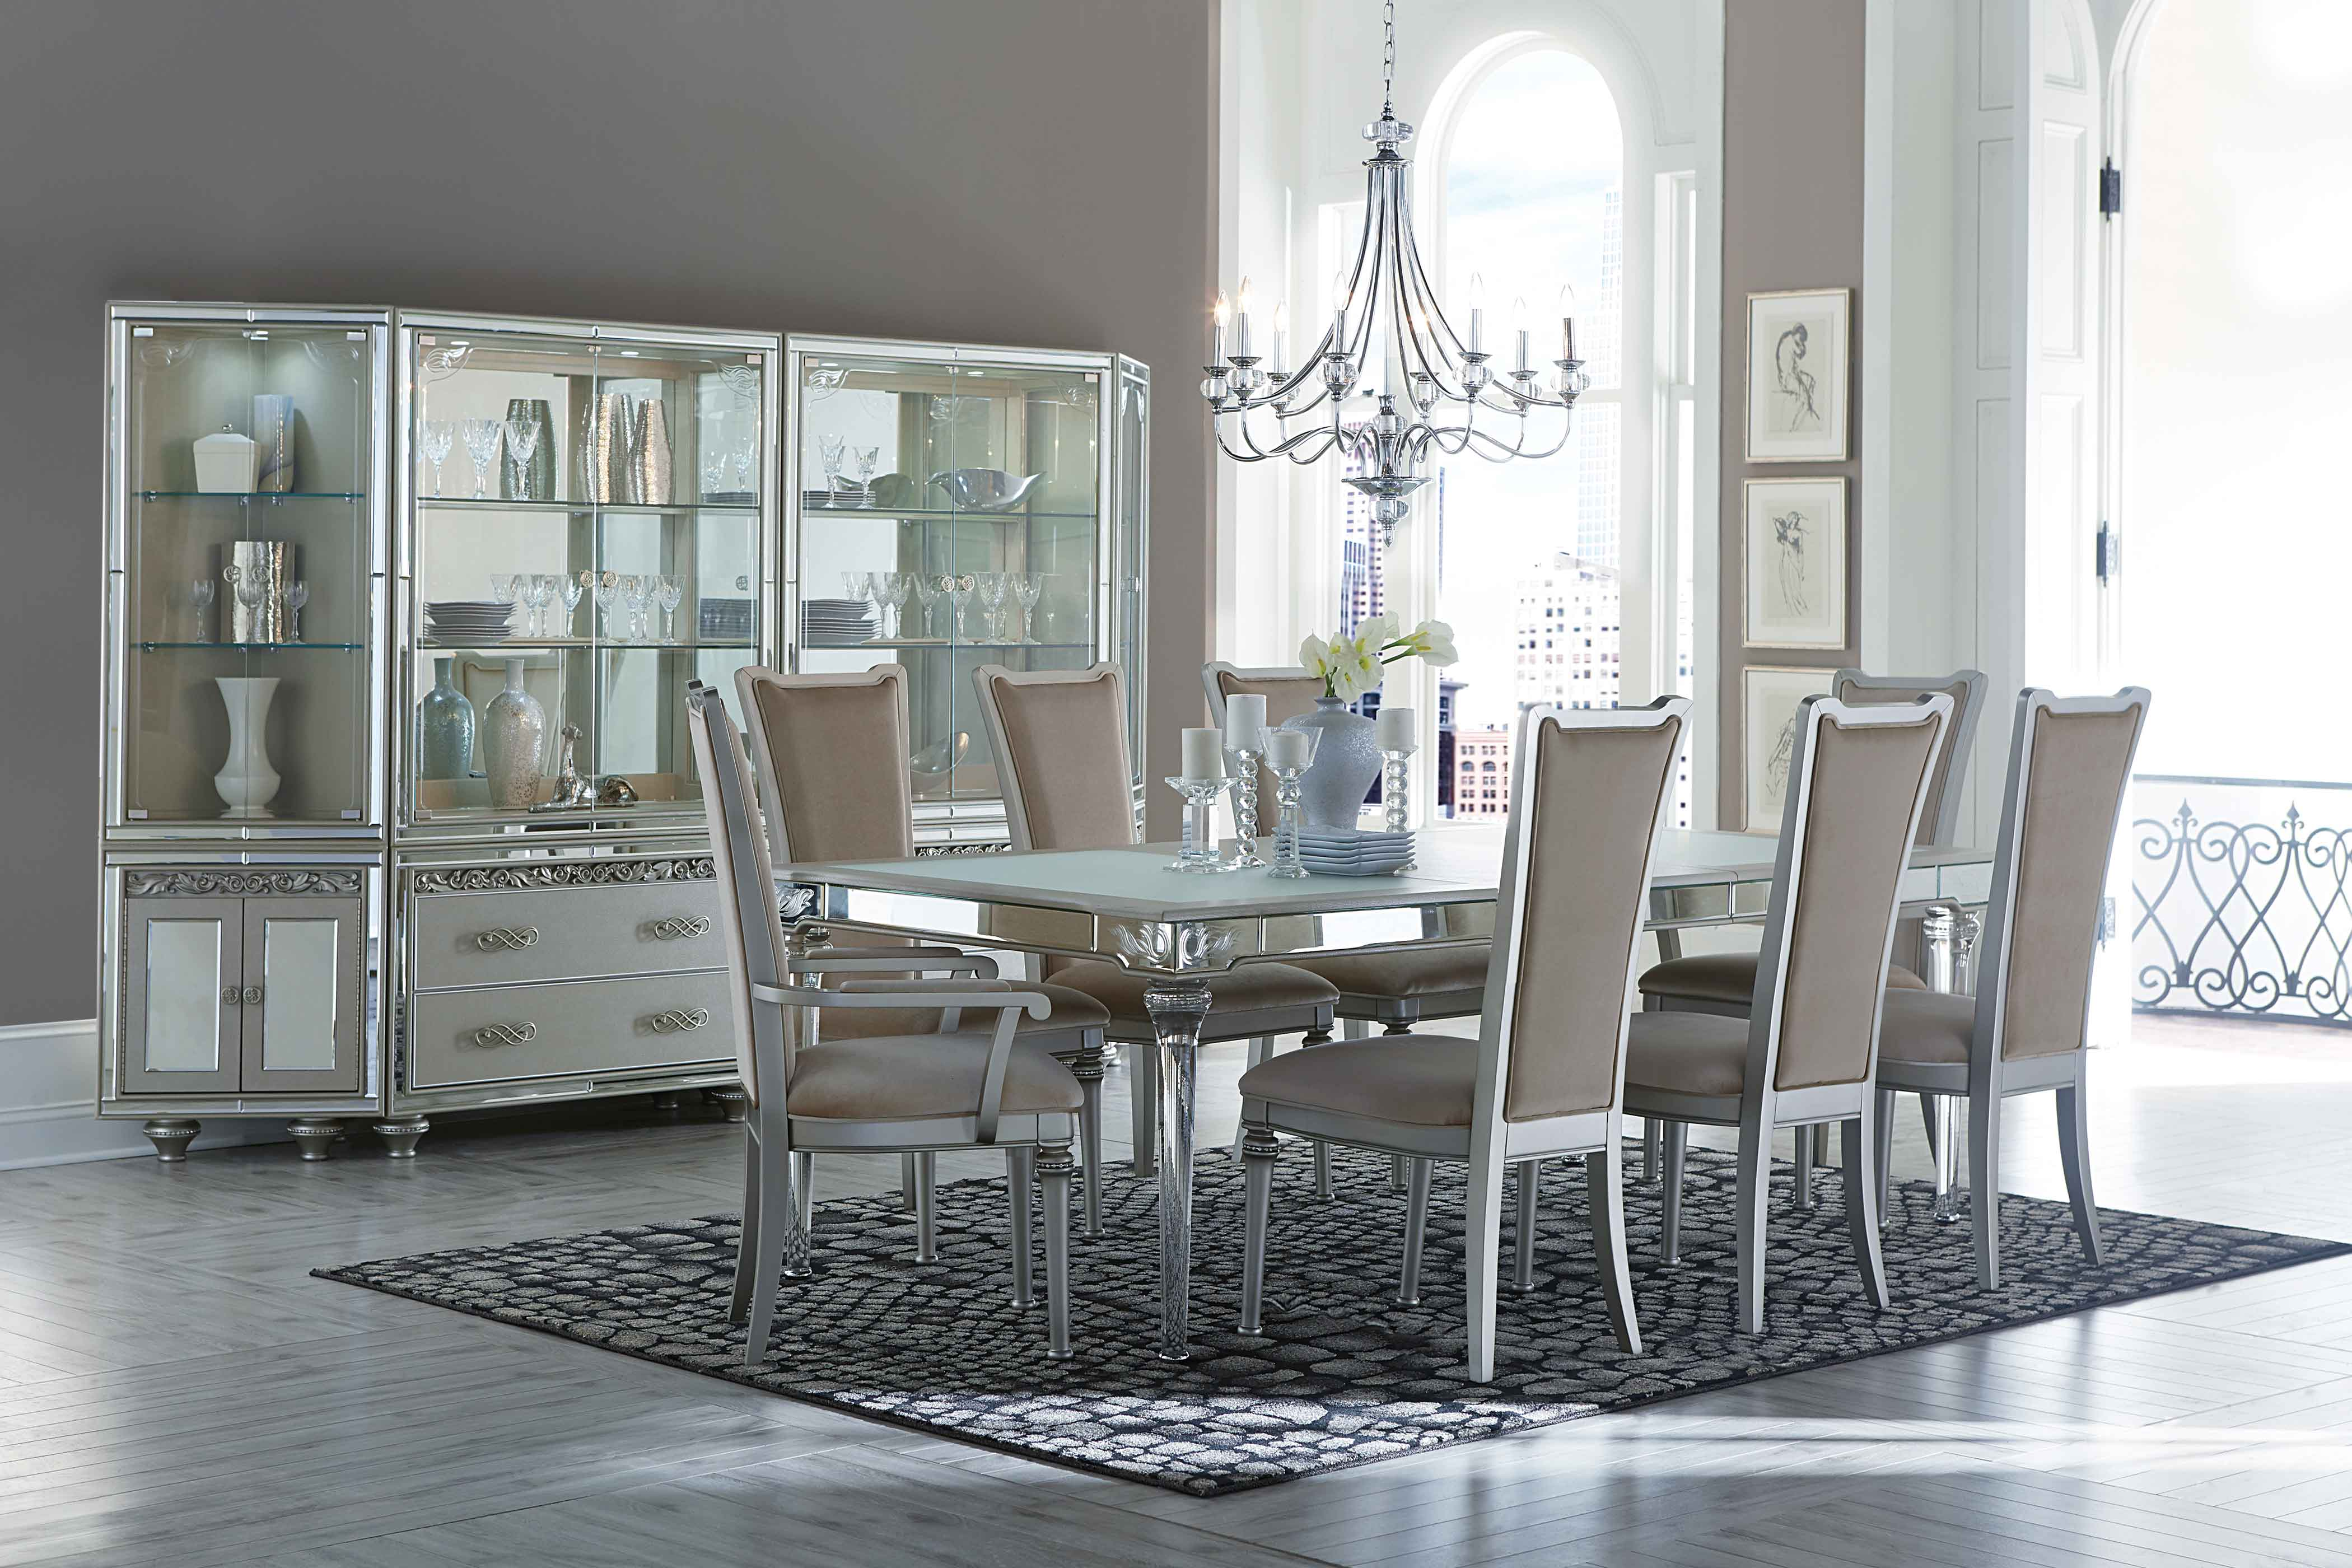 Aico Bel Air Park Dining Room Collection